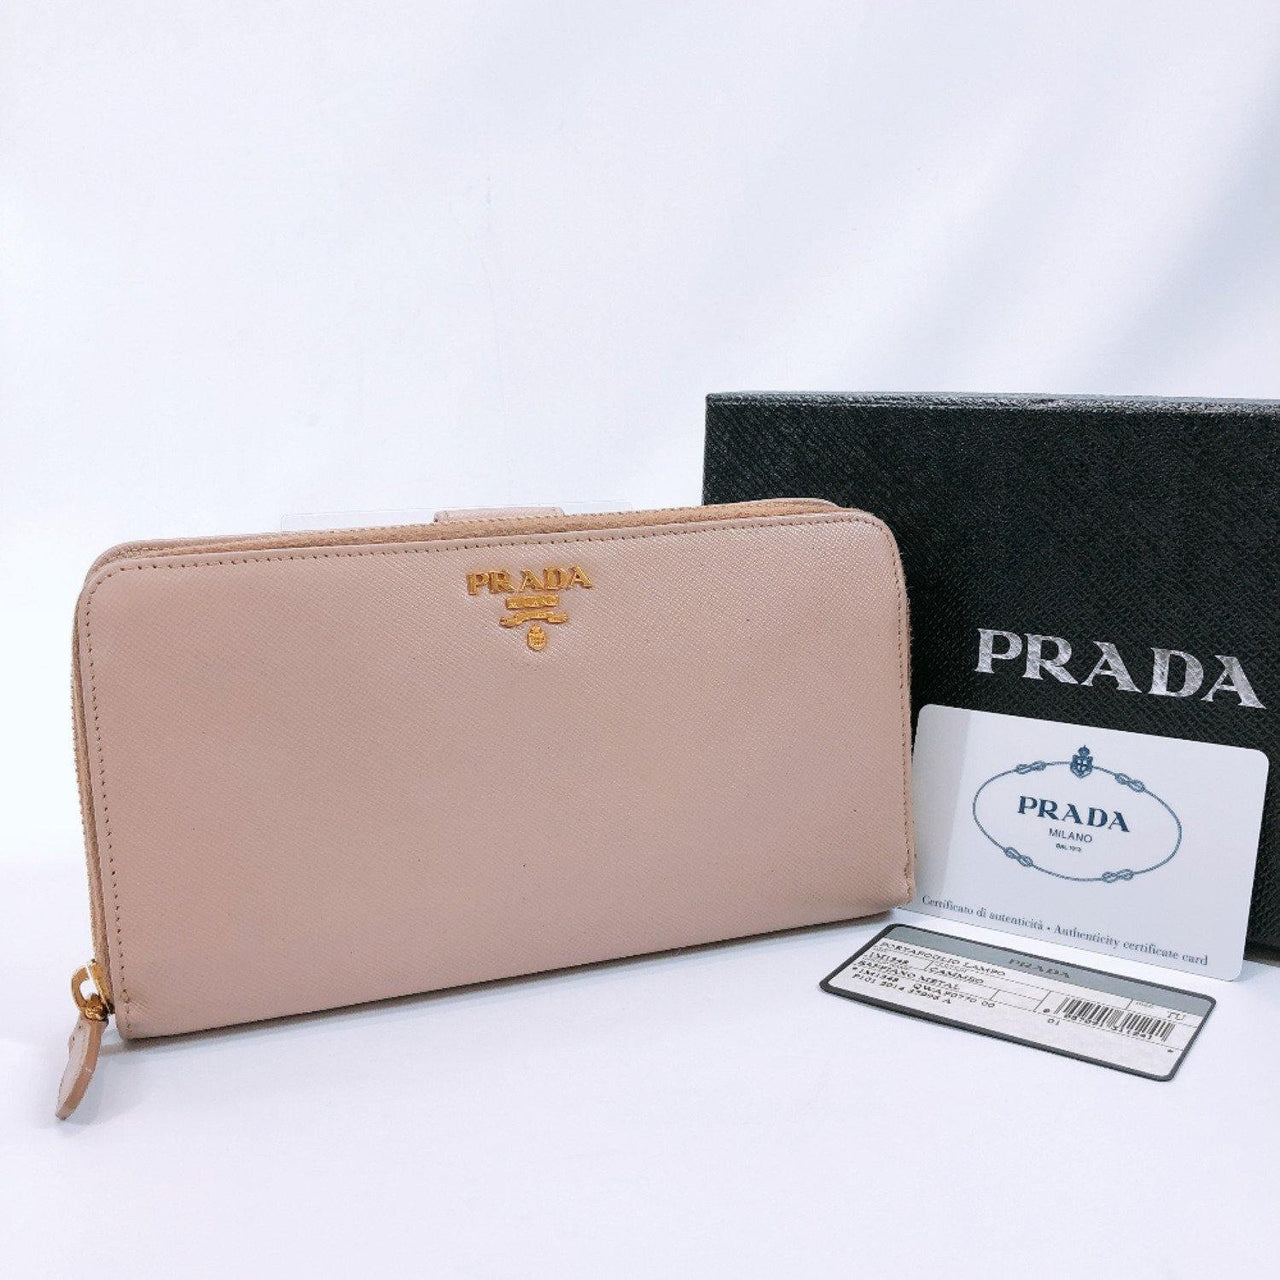 PRADA purse 1M1348 Zip Around Safiano leather beige Women Used